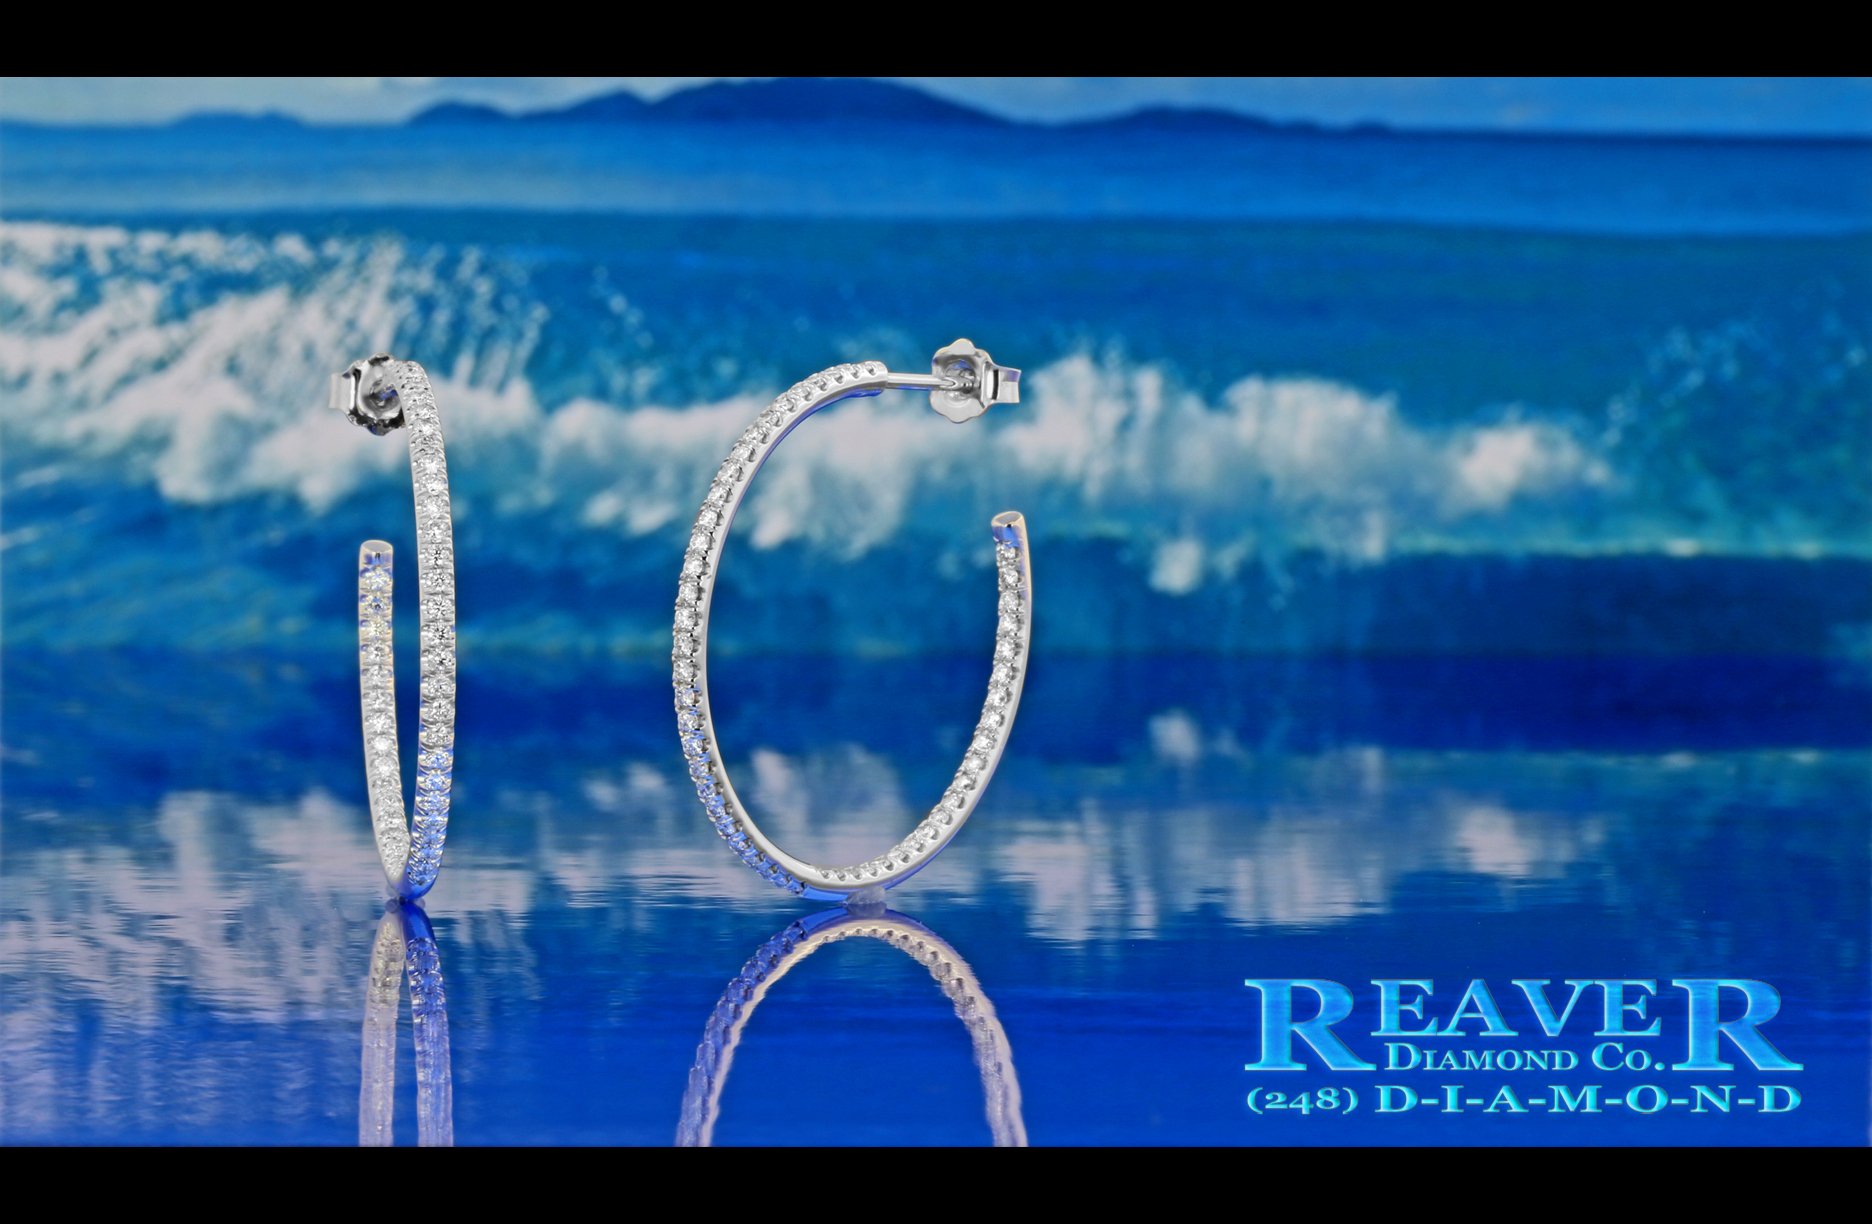 Ladies White Gold Inside-Outside Diamond Hoop Earrings with Friction Posts